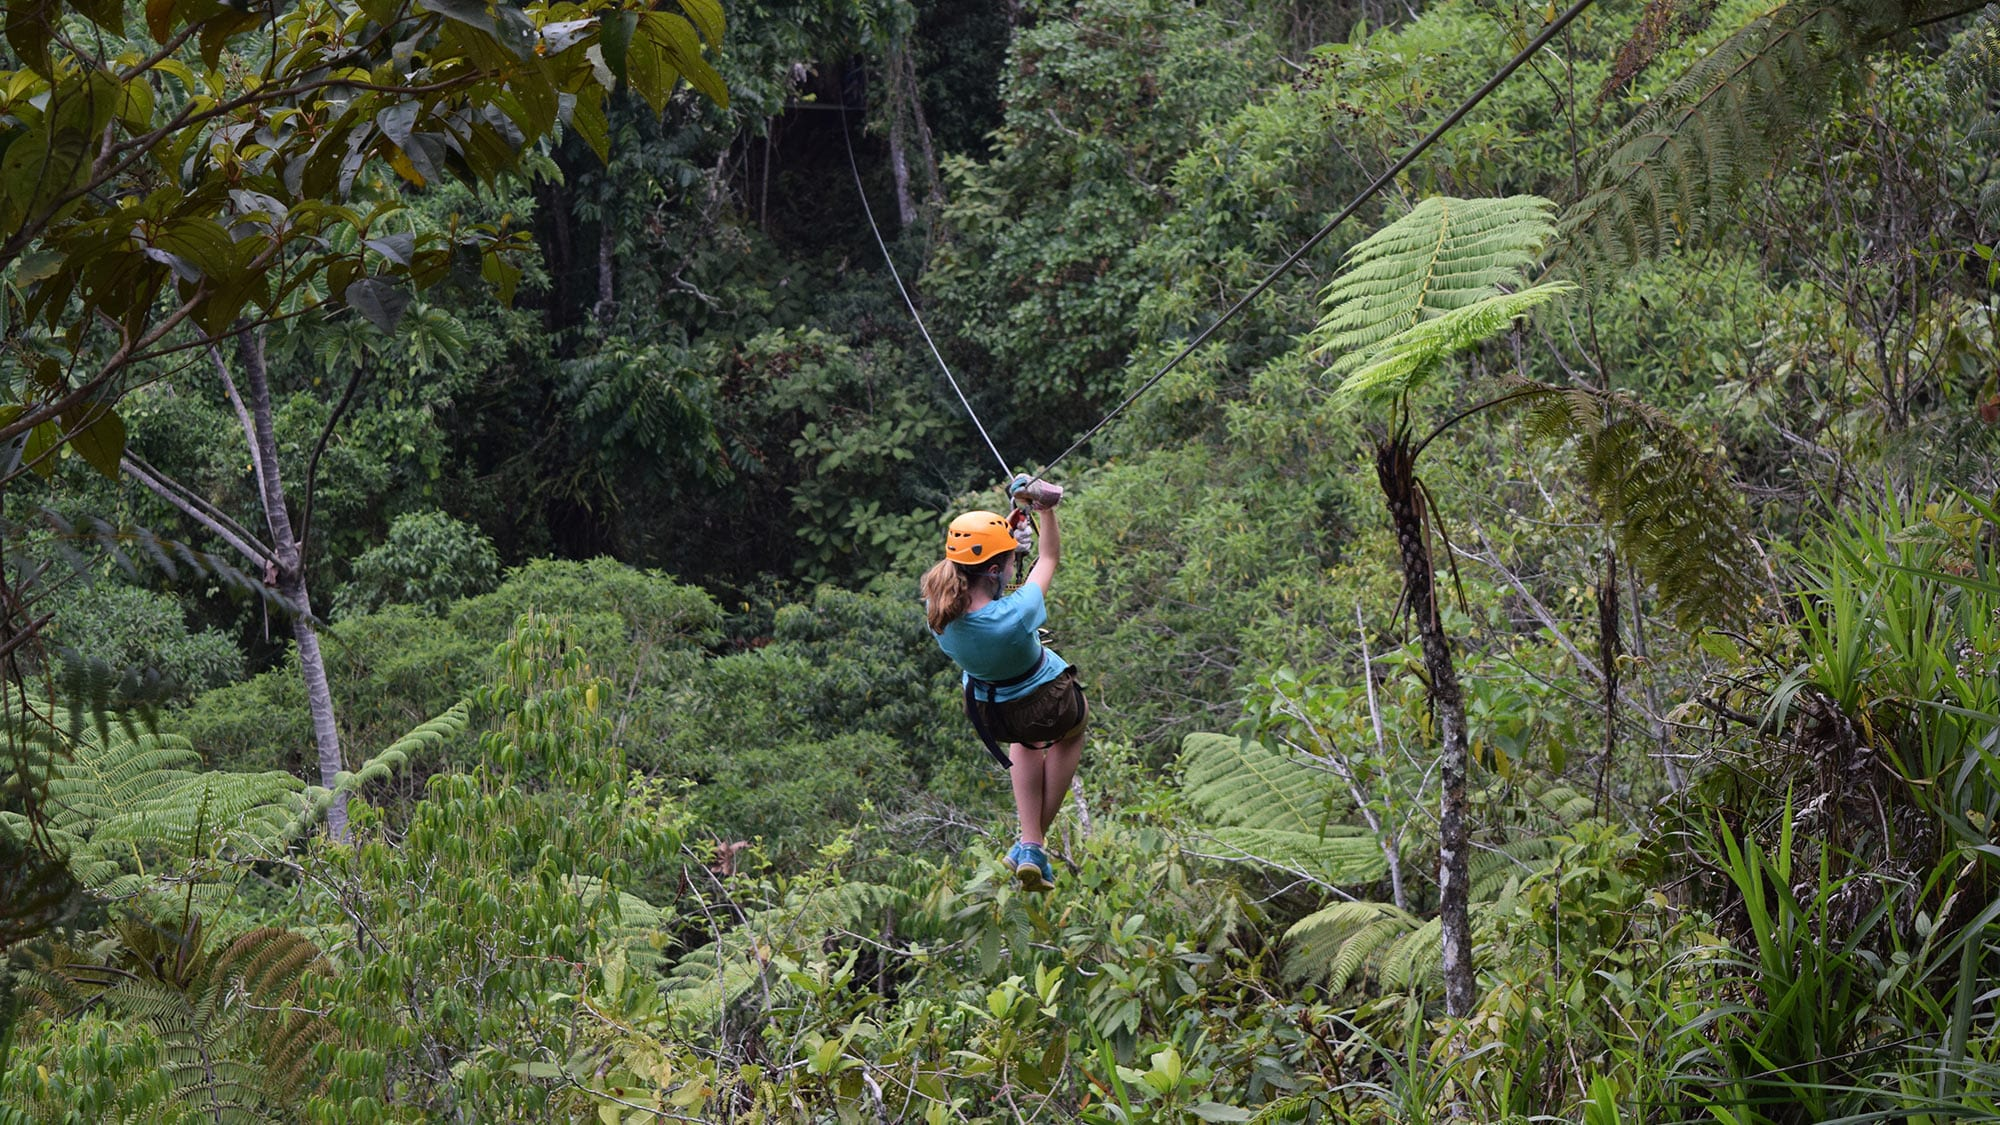 zip-lining in forest